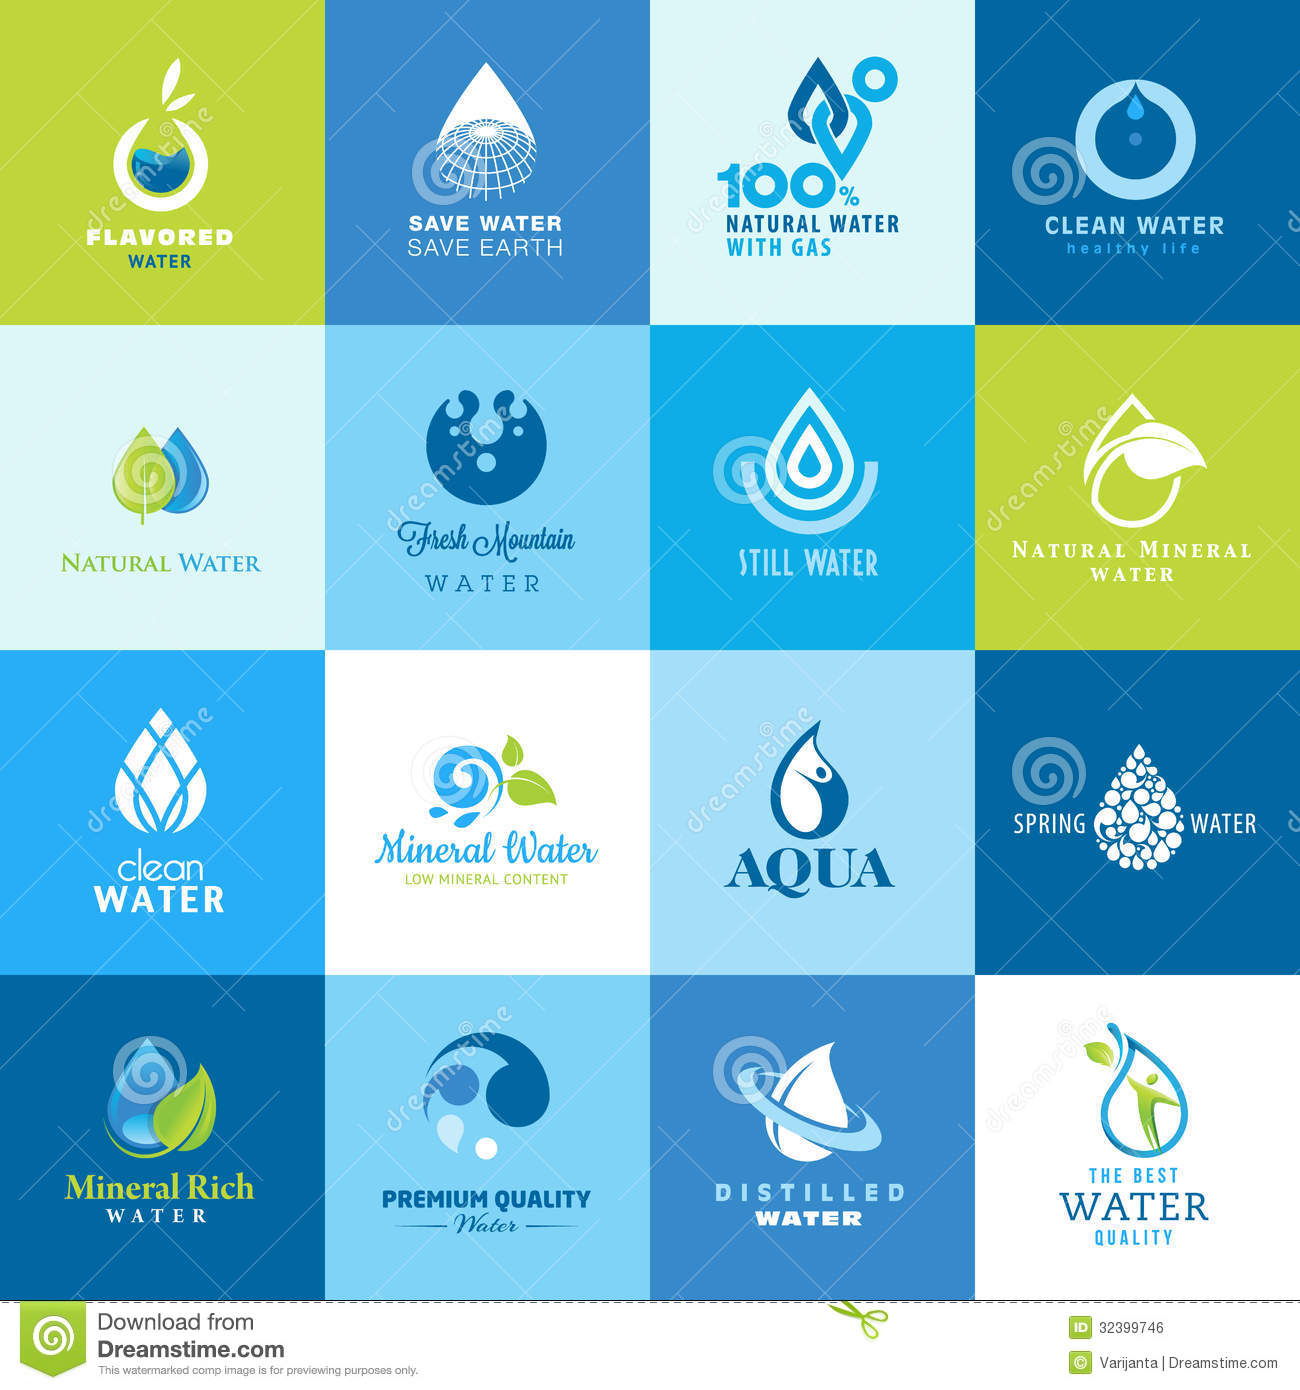 Natural Gas Prices >> Set Of Icons For All Types Of Water Stock Vector - Image: 32399746